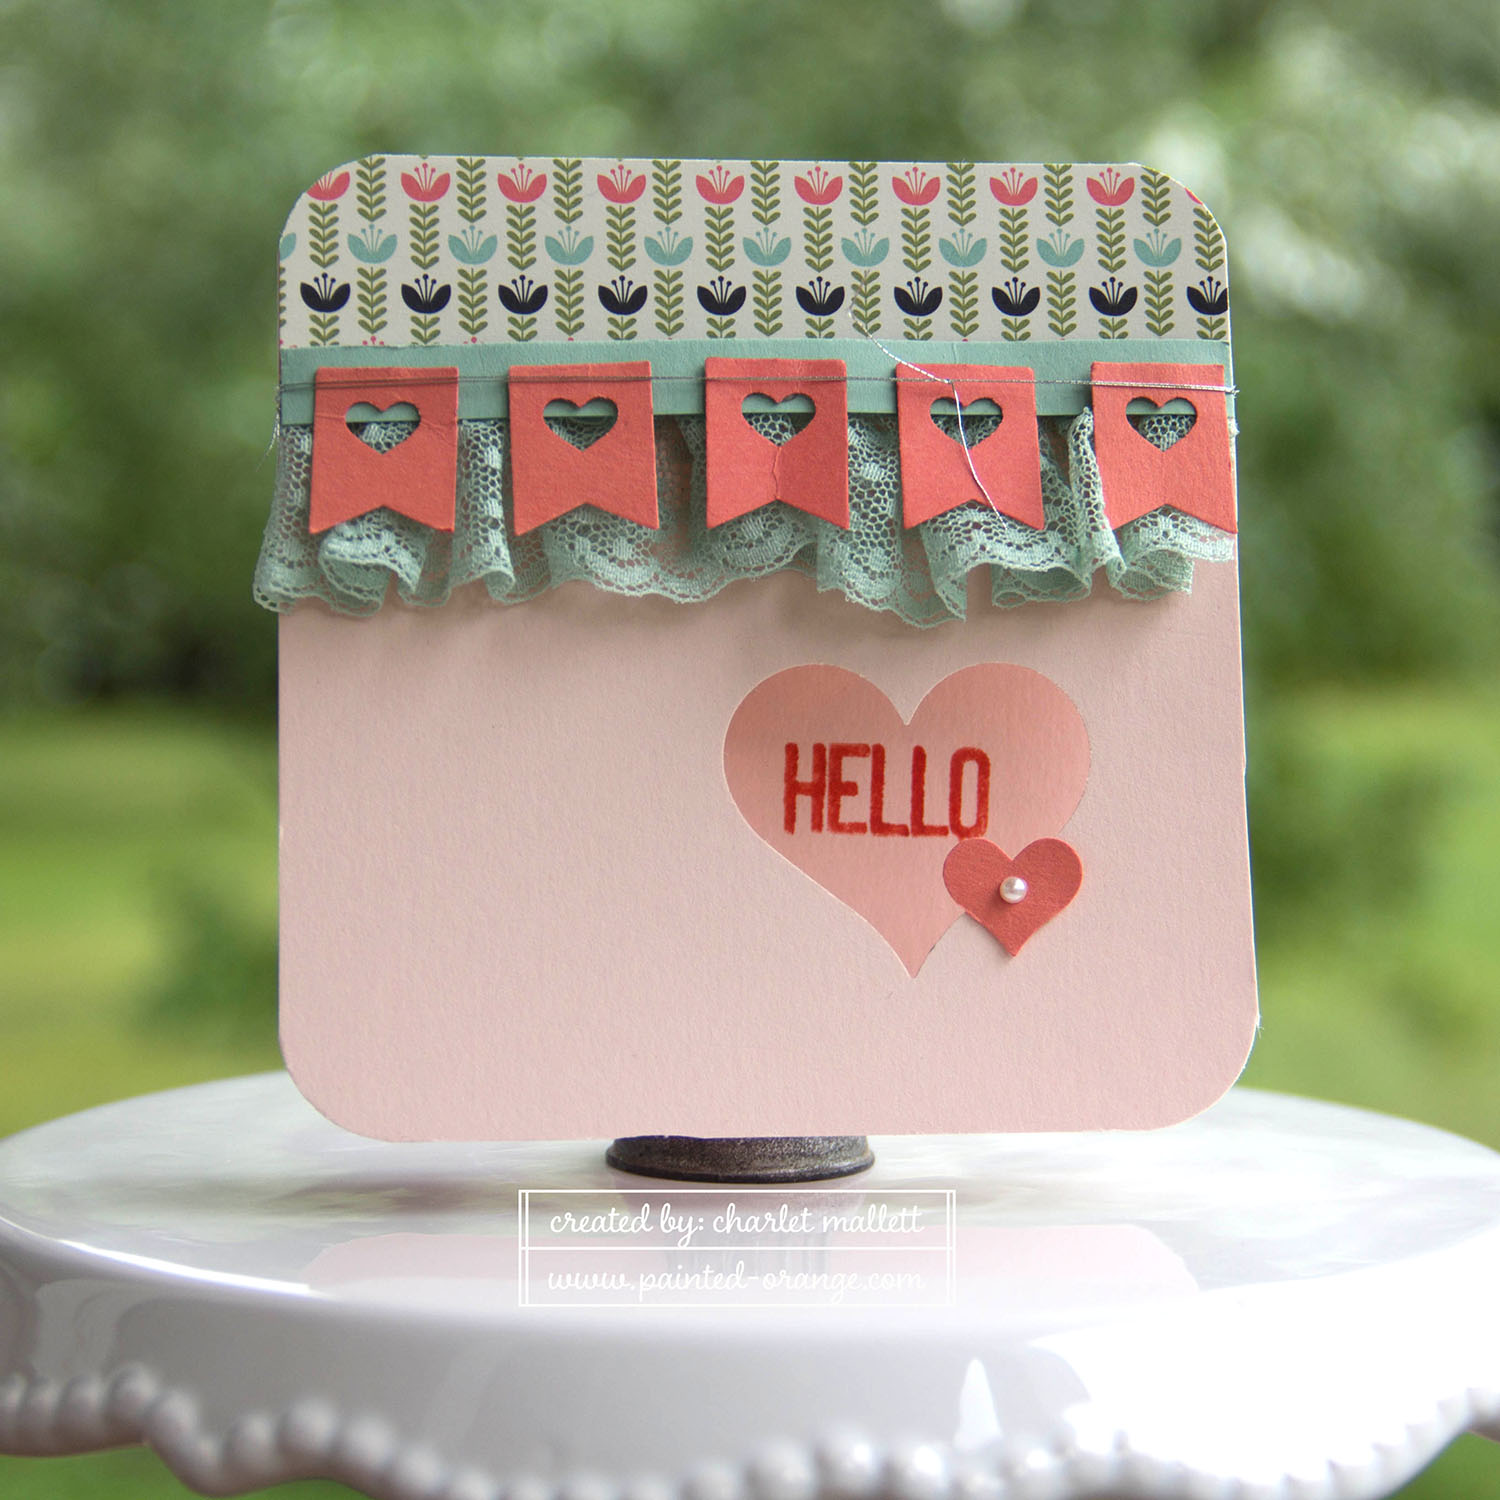 Hello Life Stamp set - Hello card. Tip: Use small heart from the heart border punch to punch out the center of the banner punch. #punchitup Stampin' Up!